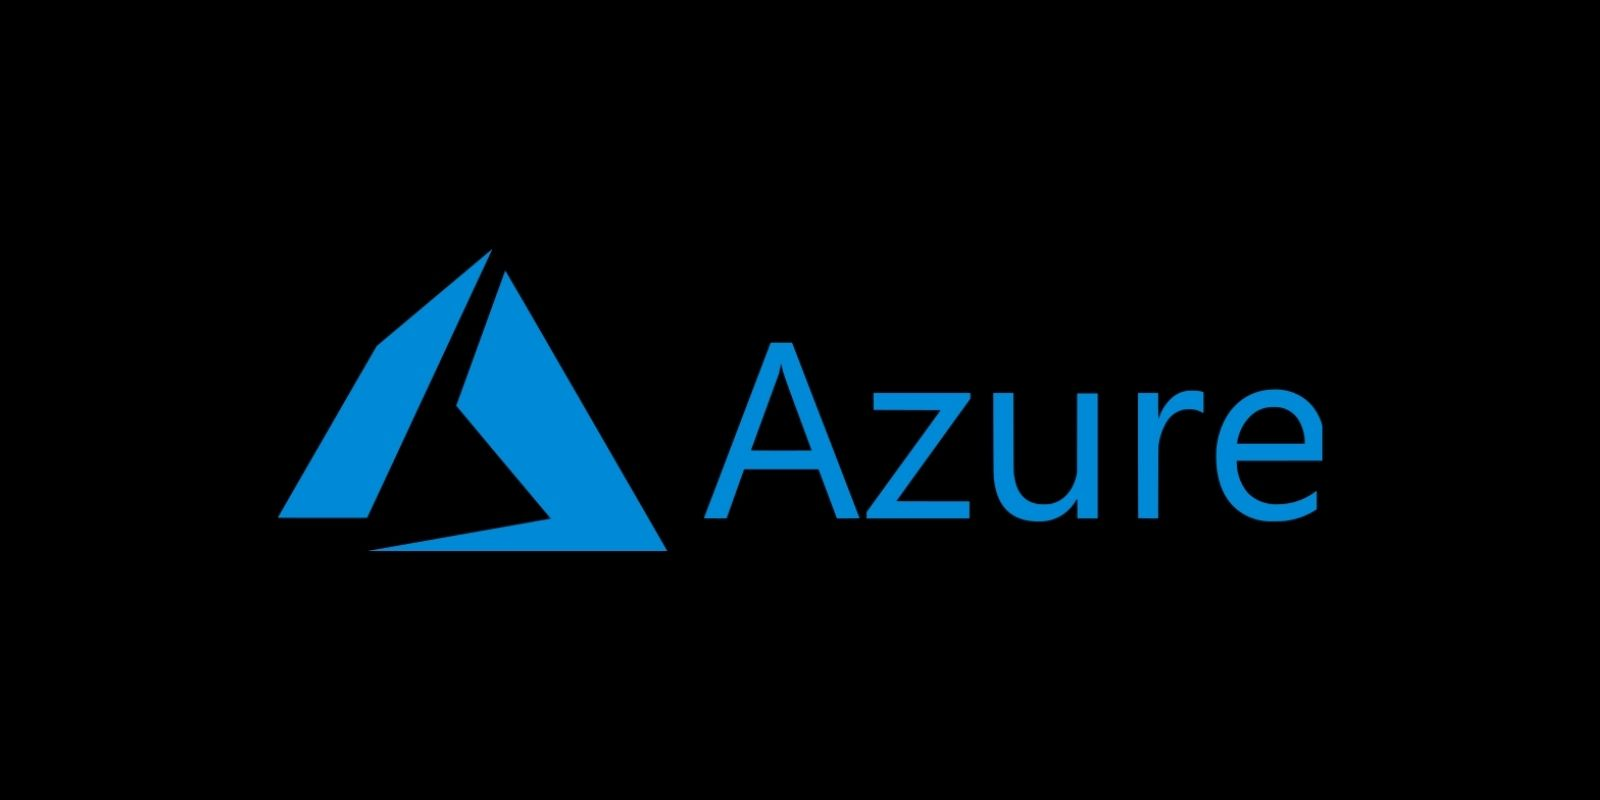 What are the popular job opportunities available for trained Azure experts in Bangalore?